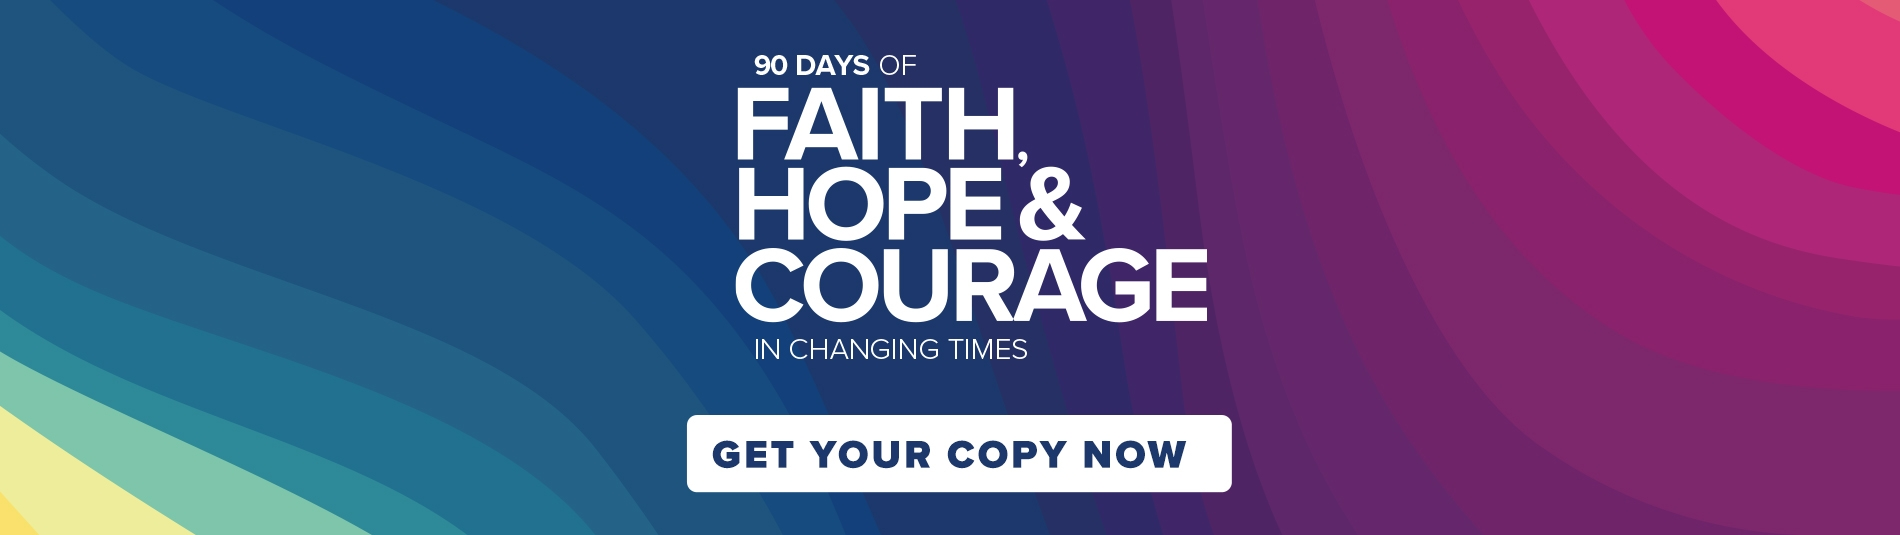 90 days of Faith, Hope and Courage. Get your copy now